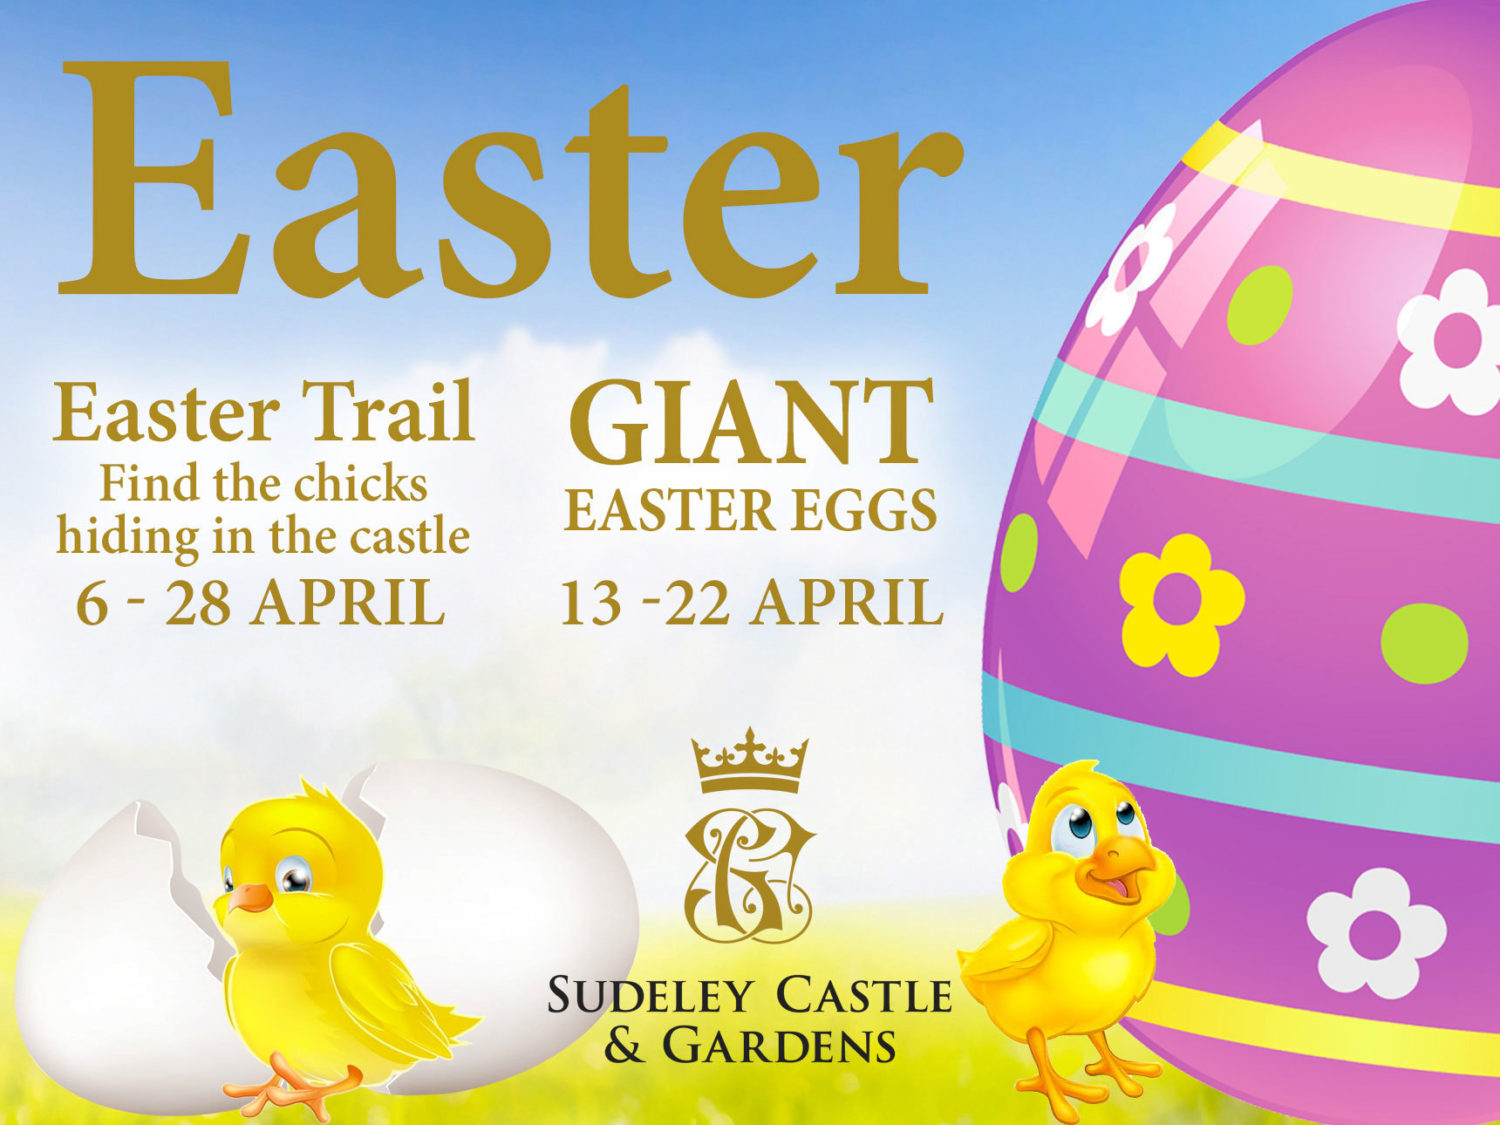 Advert: Easter Trail. Find the chicks hiding in the castle. 6 - 28th April. Giant Easter Eggs. 13 - 22nd April.